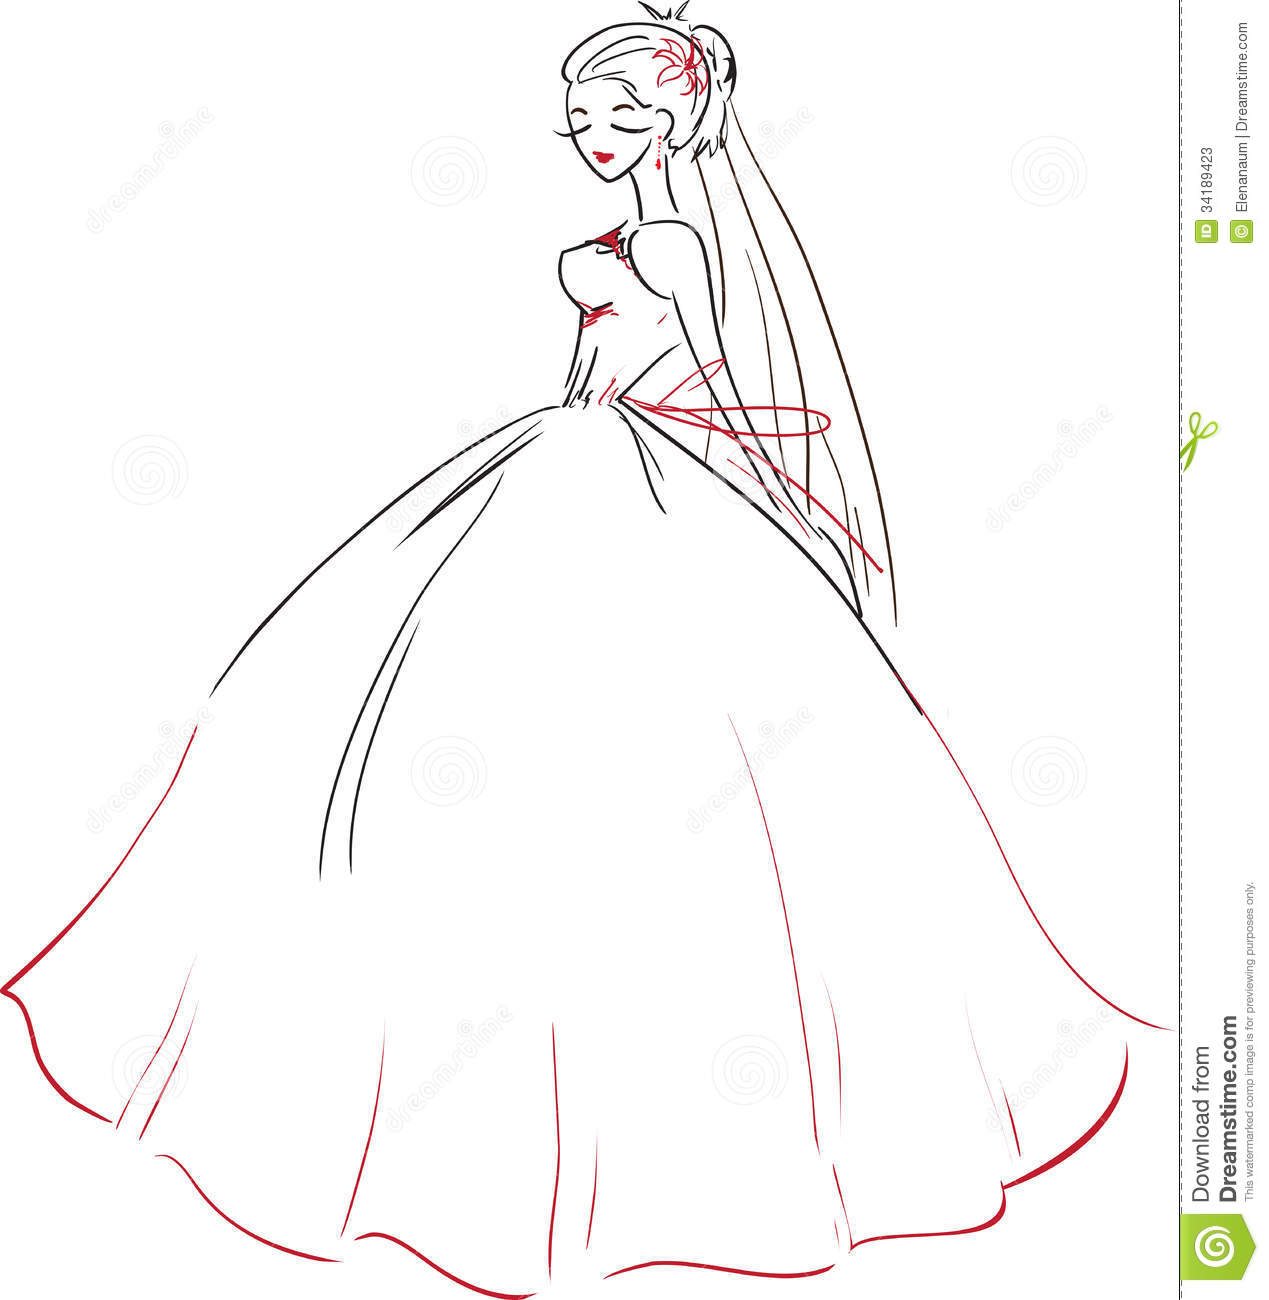 Symbolic bride in a magnificent red wedding dress theme wedding